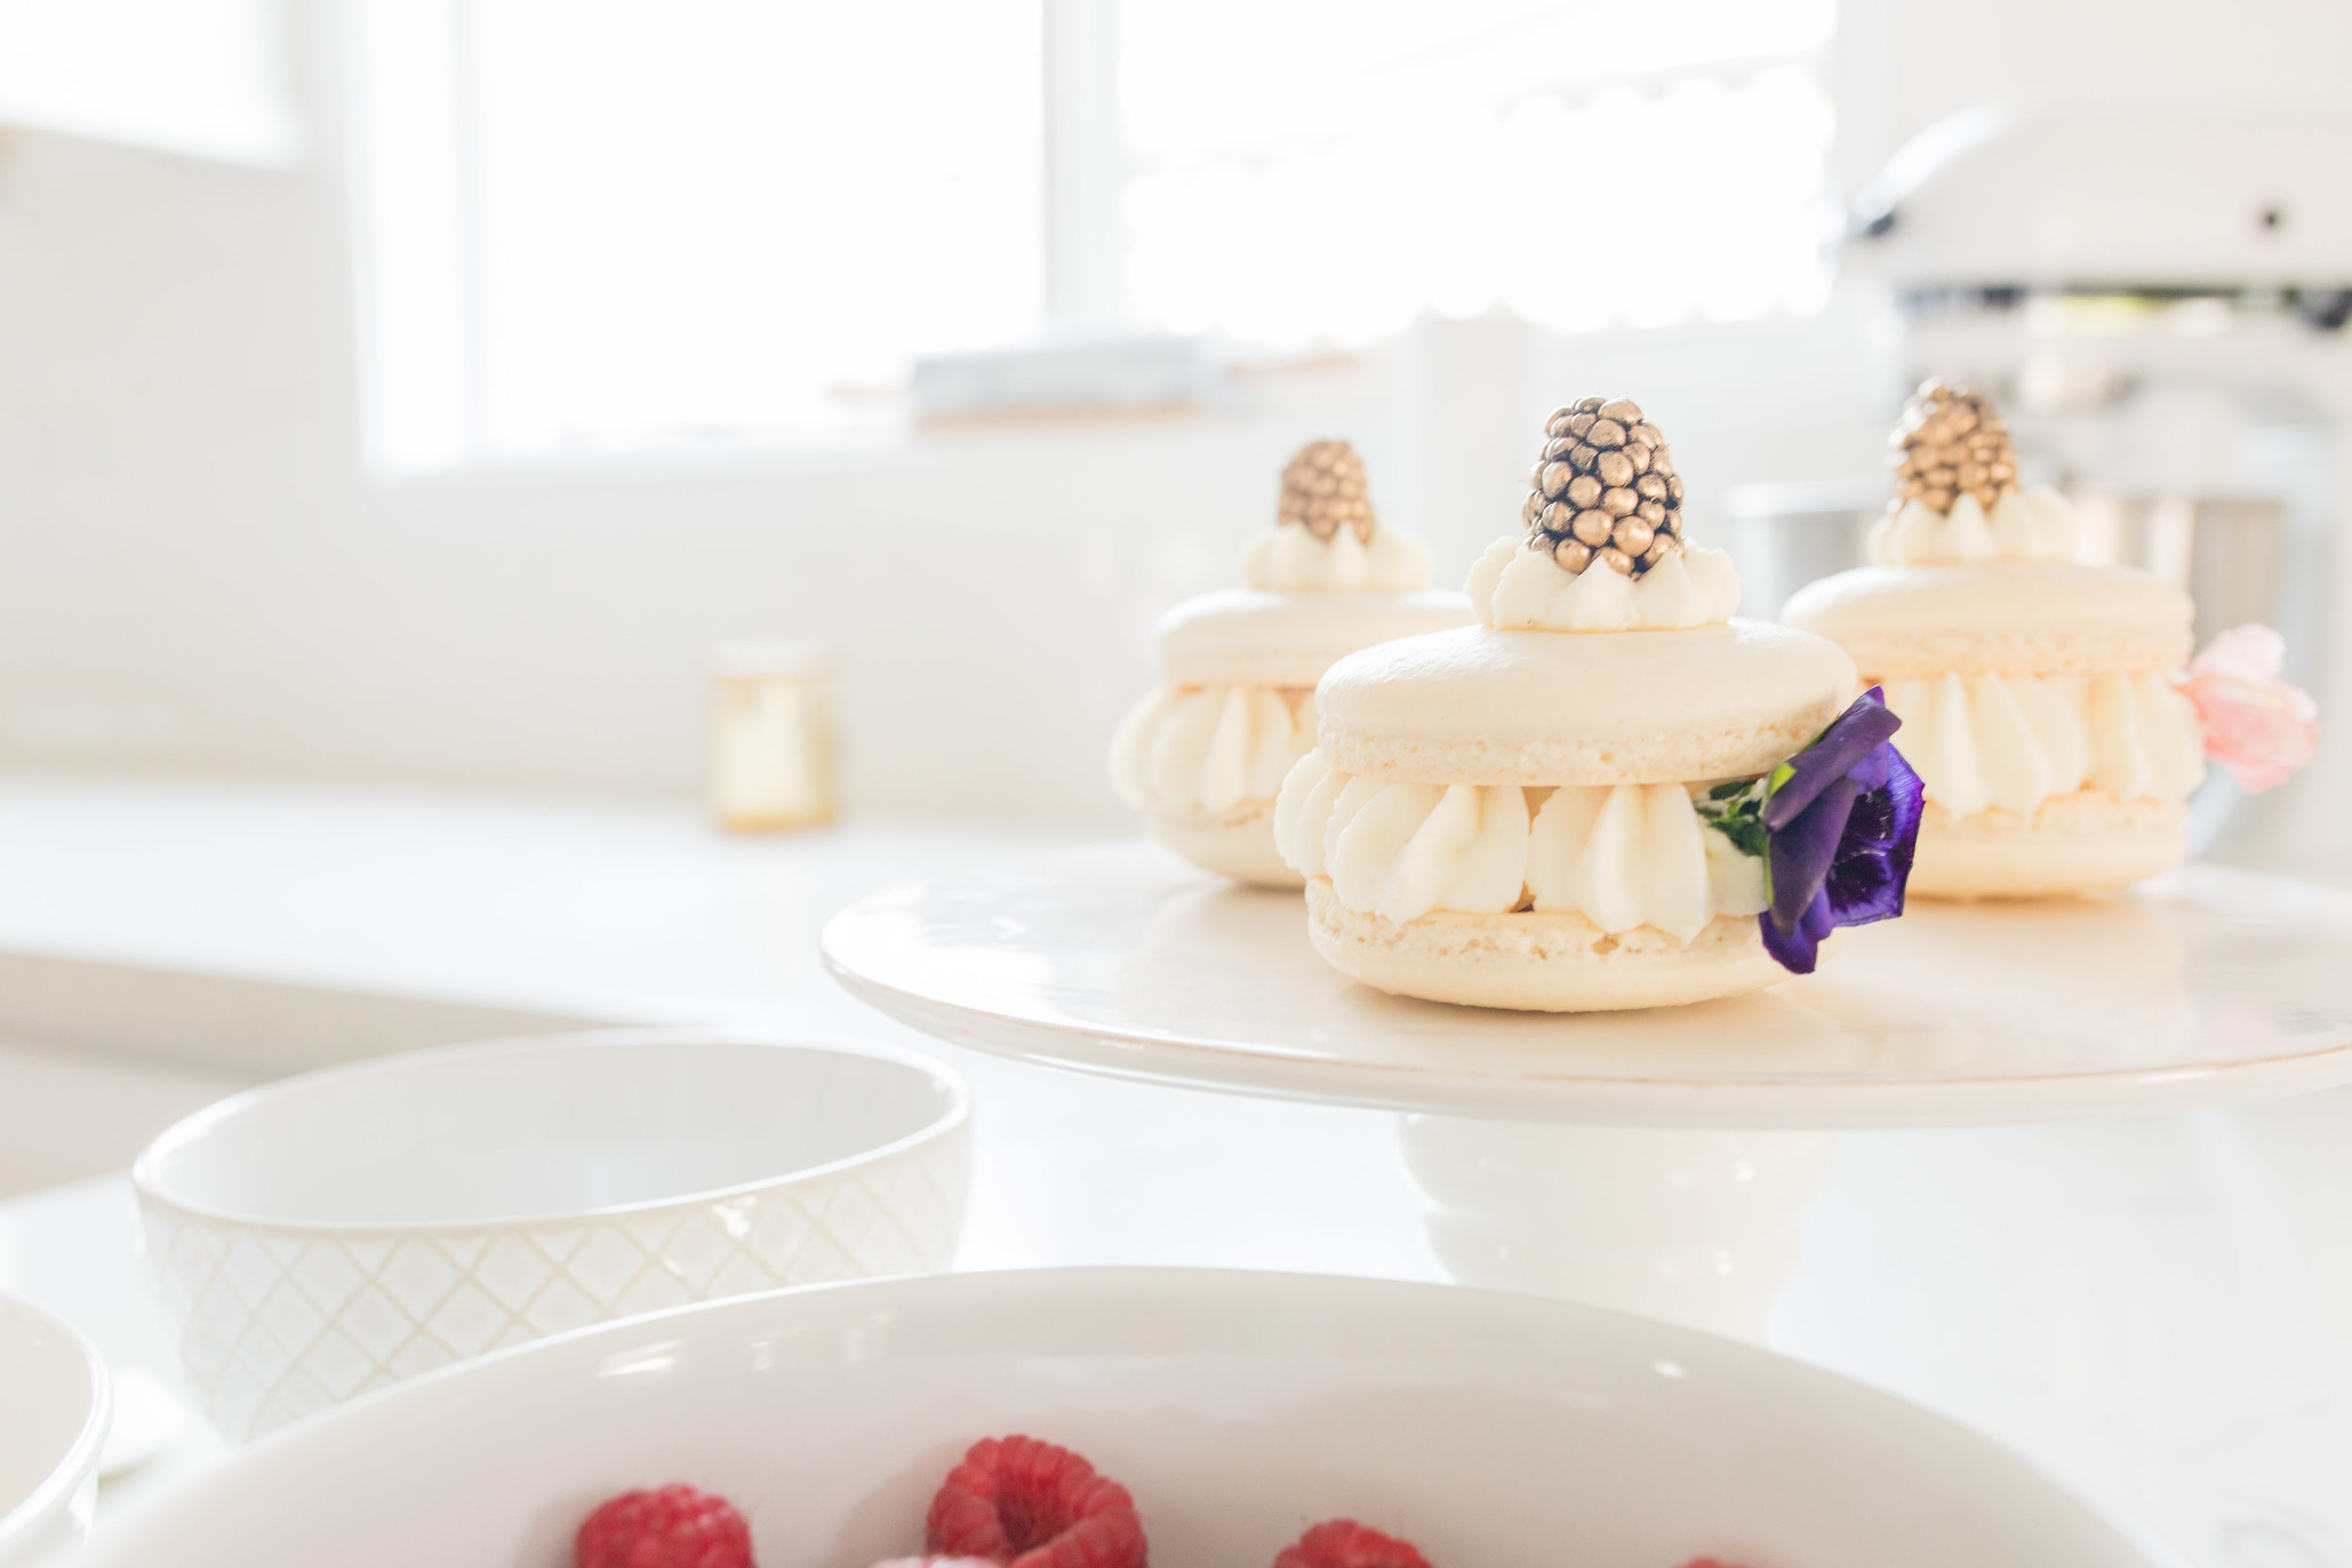 Large Macaron Sandwiches with gold dusted berries and edible flowers. Photo:  Yasmin Roohi